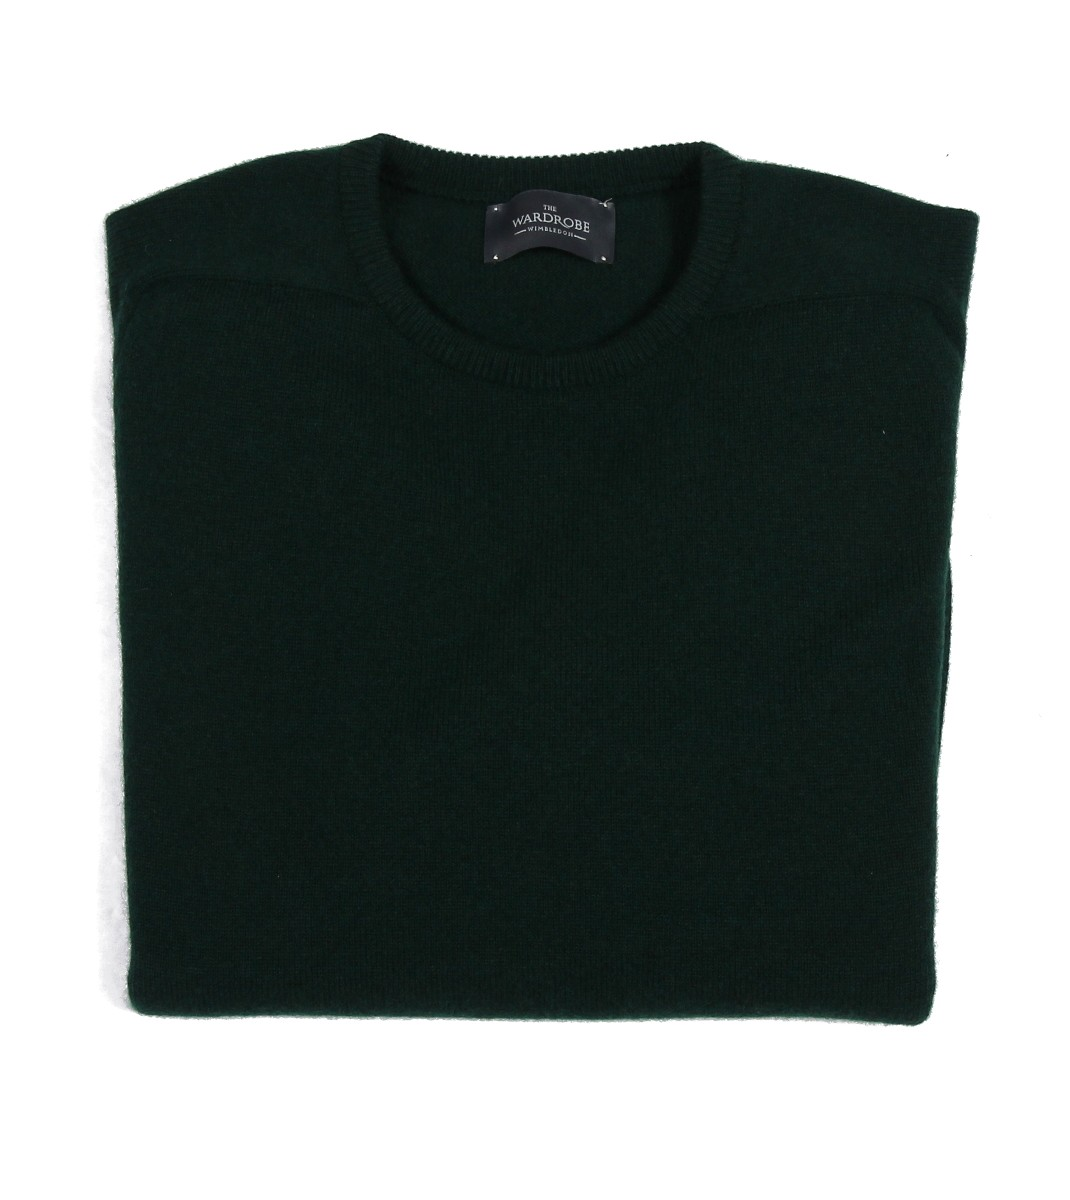 The Wardrobe Sweater: Bottle Green